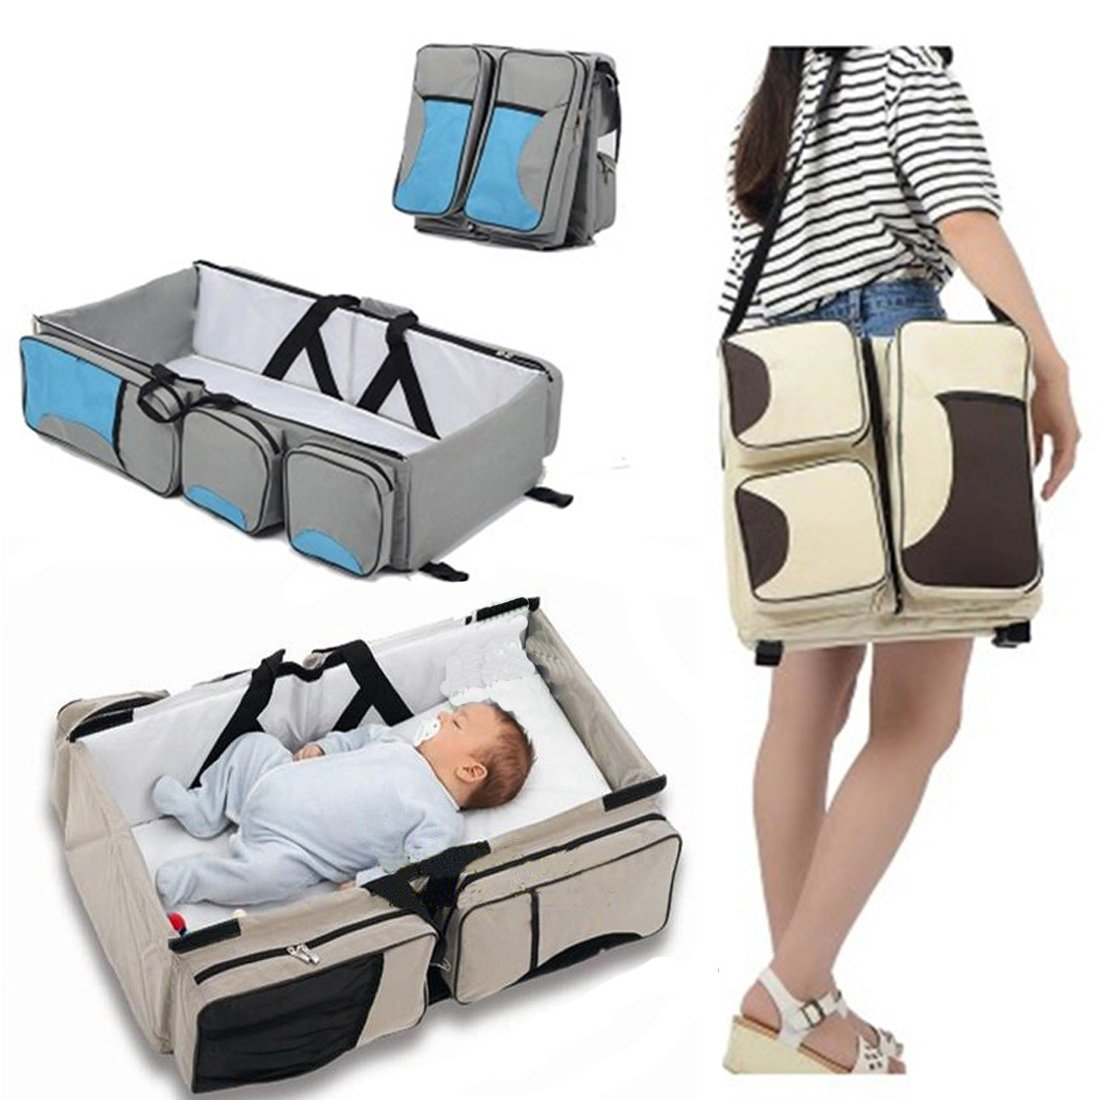 Baby 3 in 1 Portable Bassinet Diaper Bag Changing Station with Fitted Sheet Travel Crib Bed for Babies Multi-Functional Bassinet Travel Infant Bed